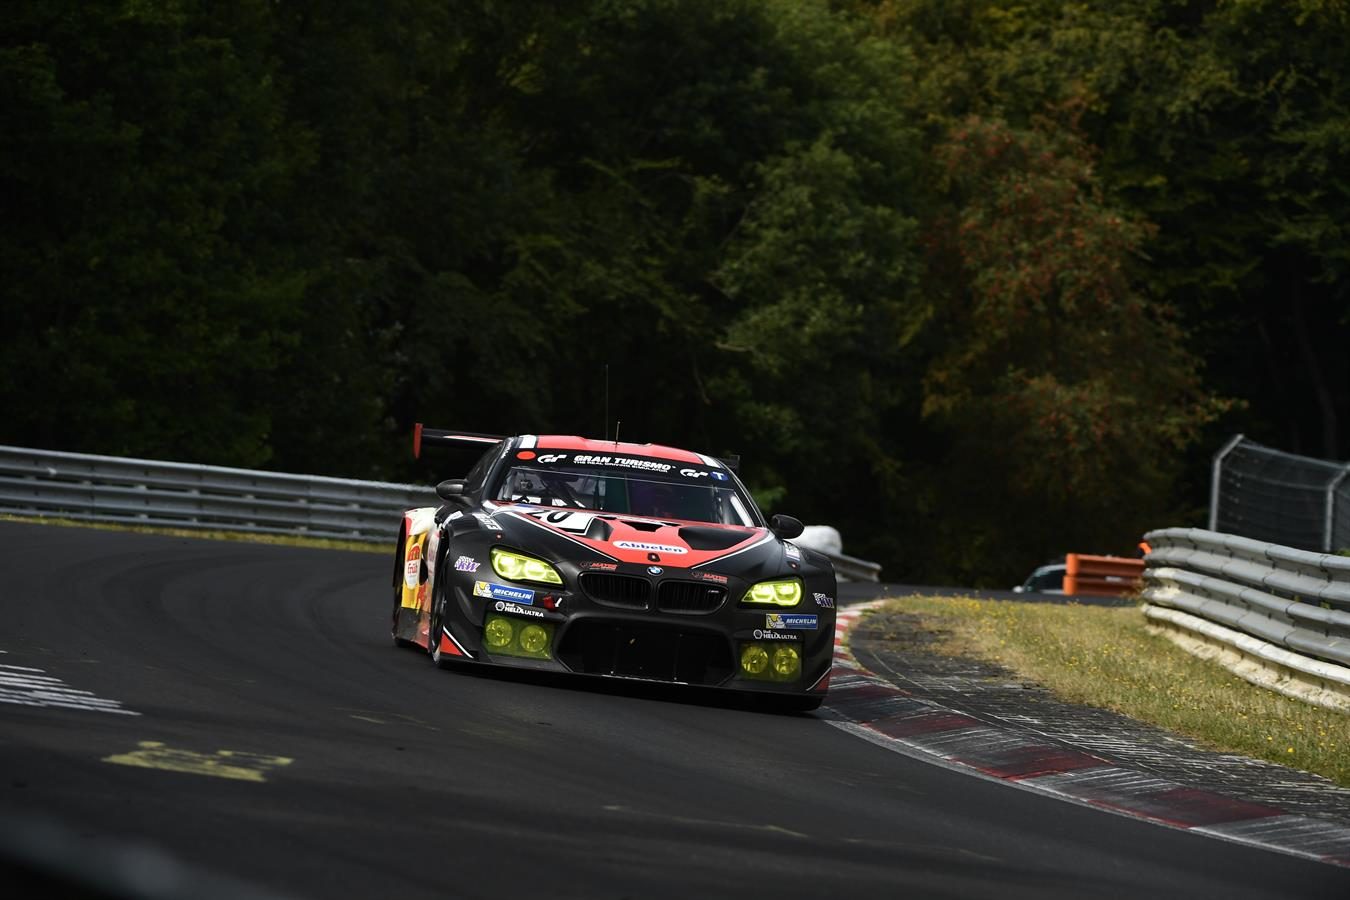 VLN 2016: Race 7 (September 3)